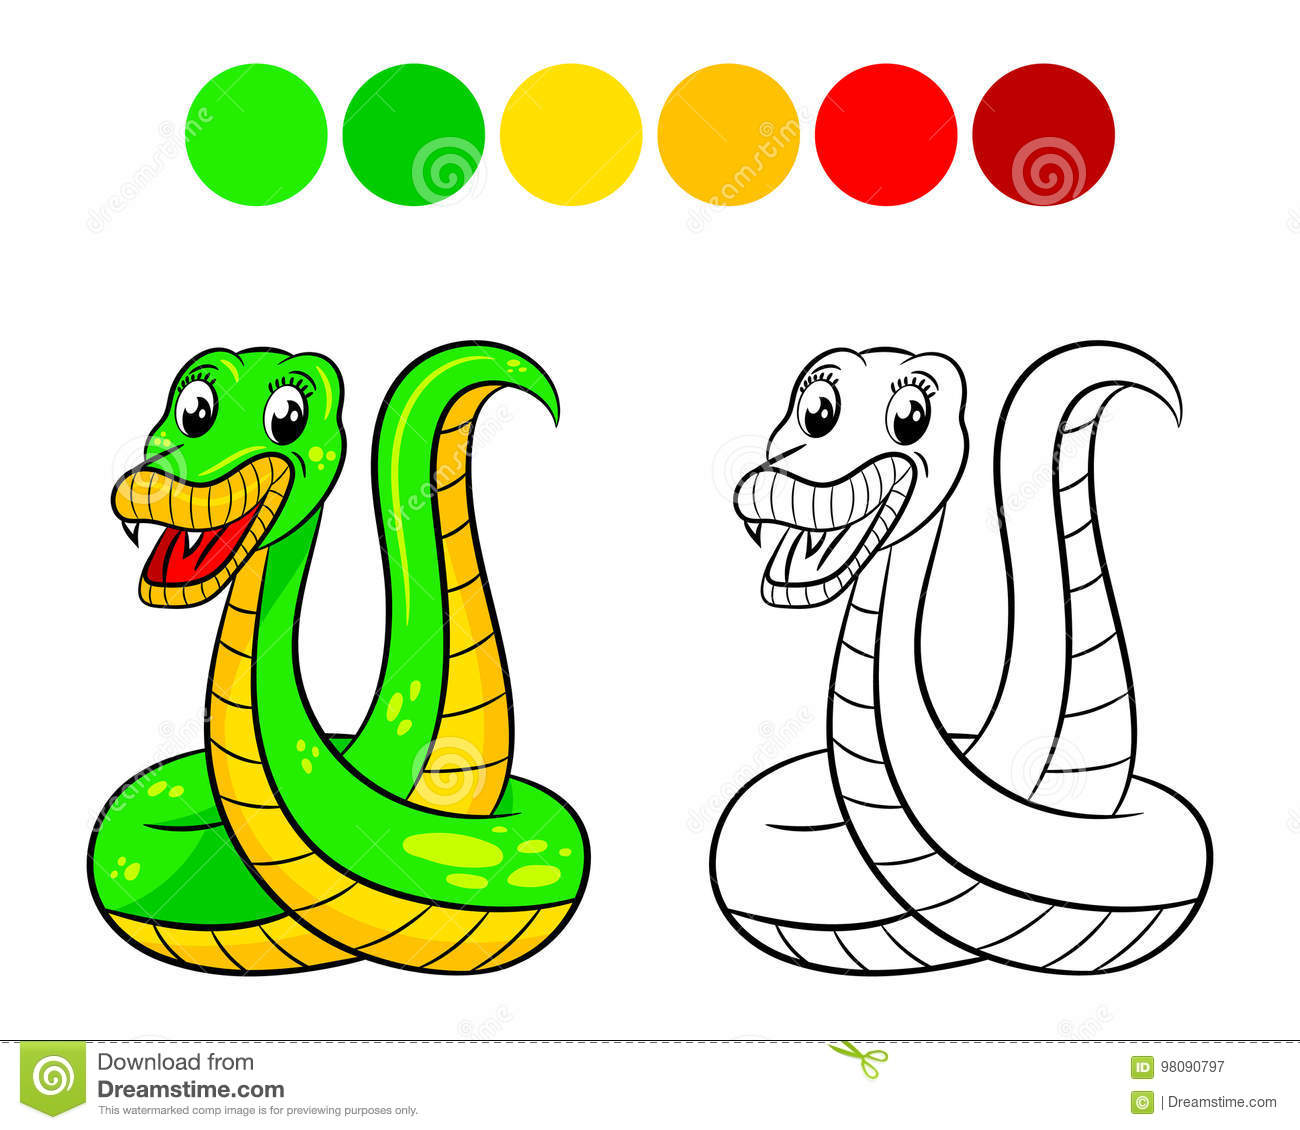 Snake coloring book. stock vector. Illustration of emotions - 98090797